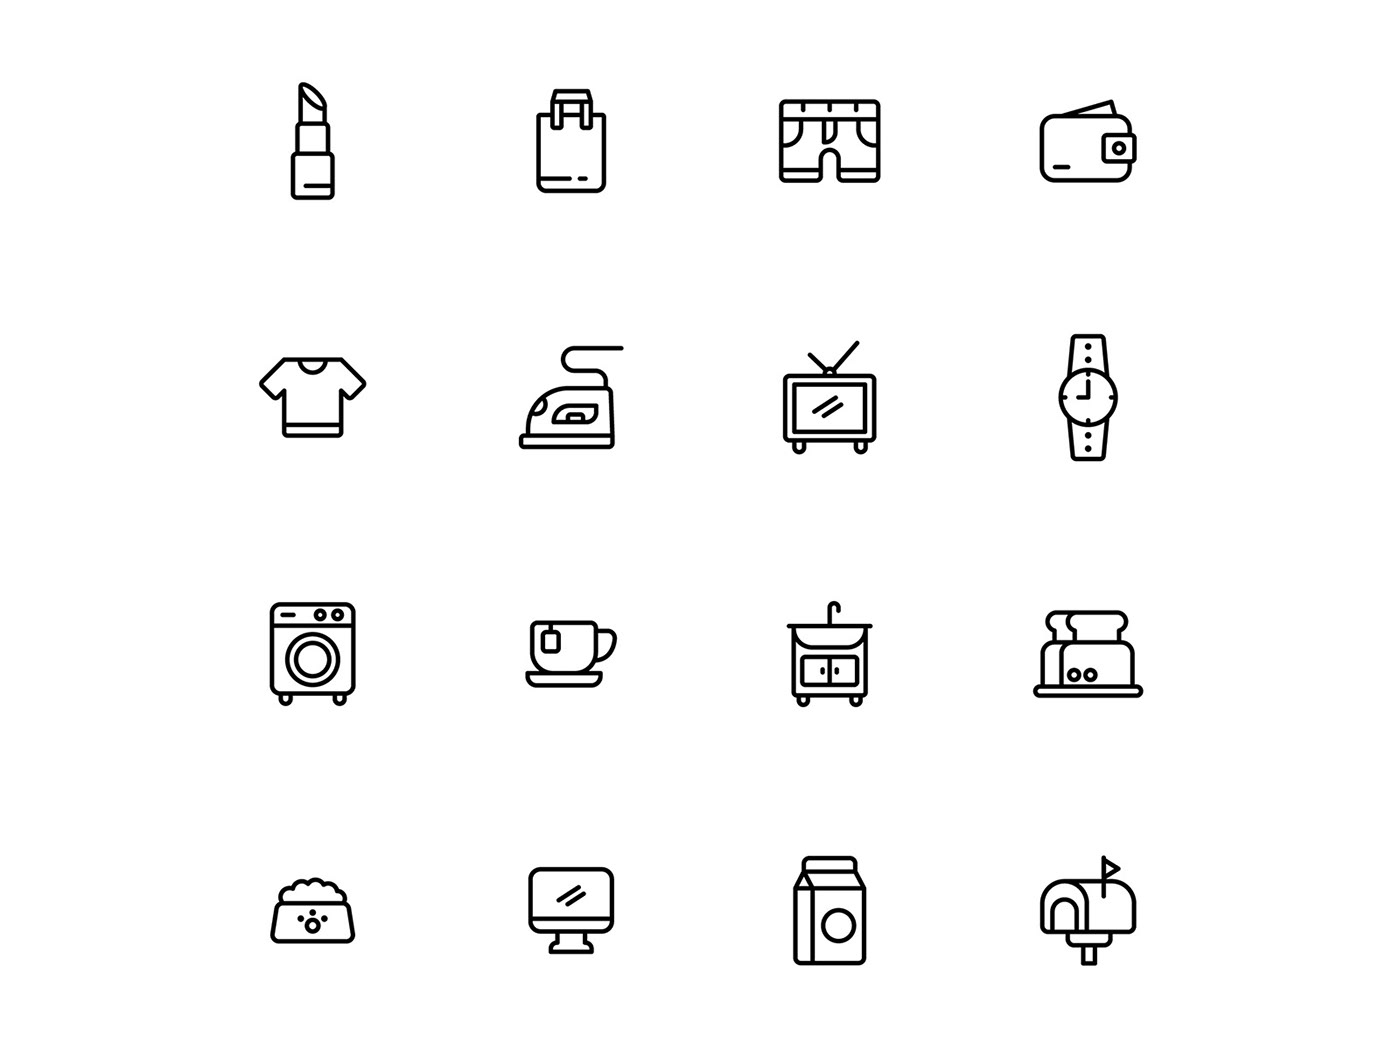 freebie icon design  icons download icons pack icons set Stuff stuff icon stuff vector vector design vector icon